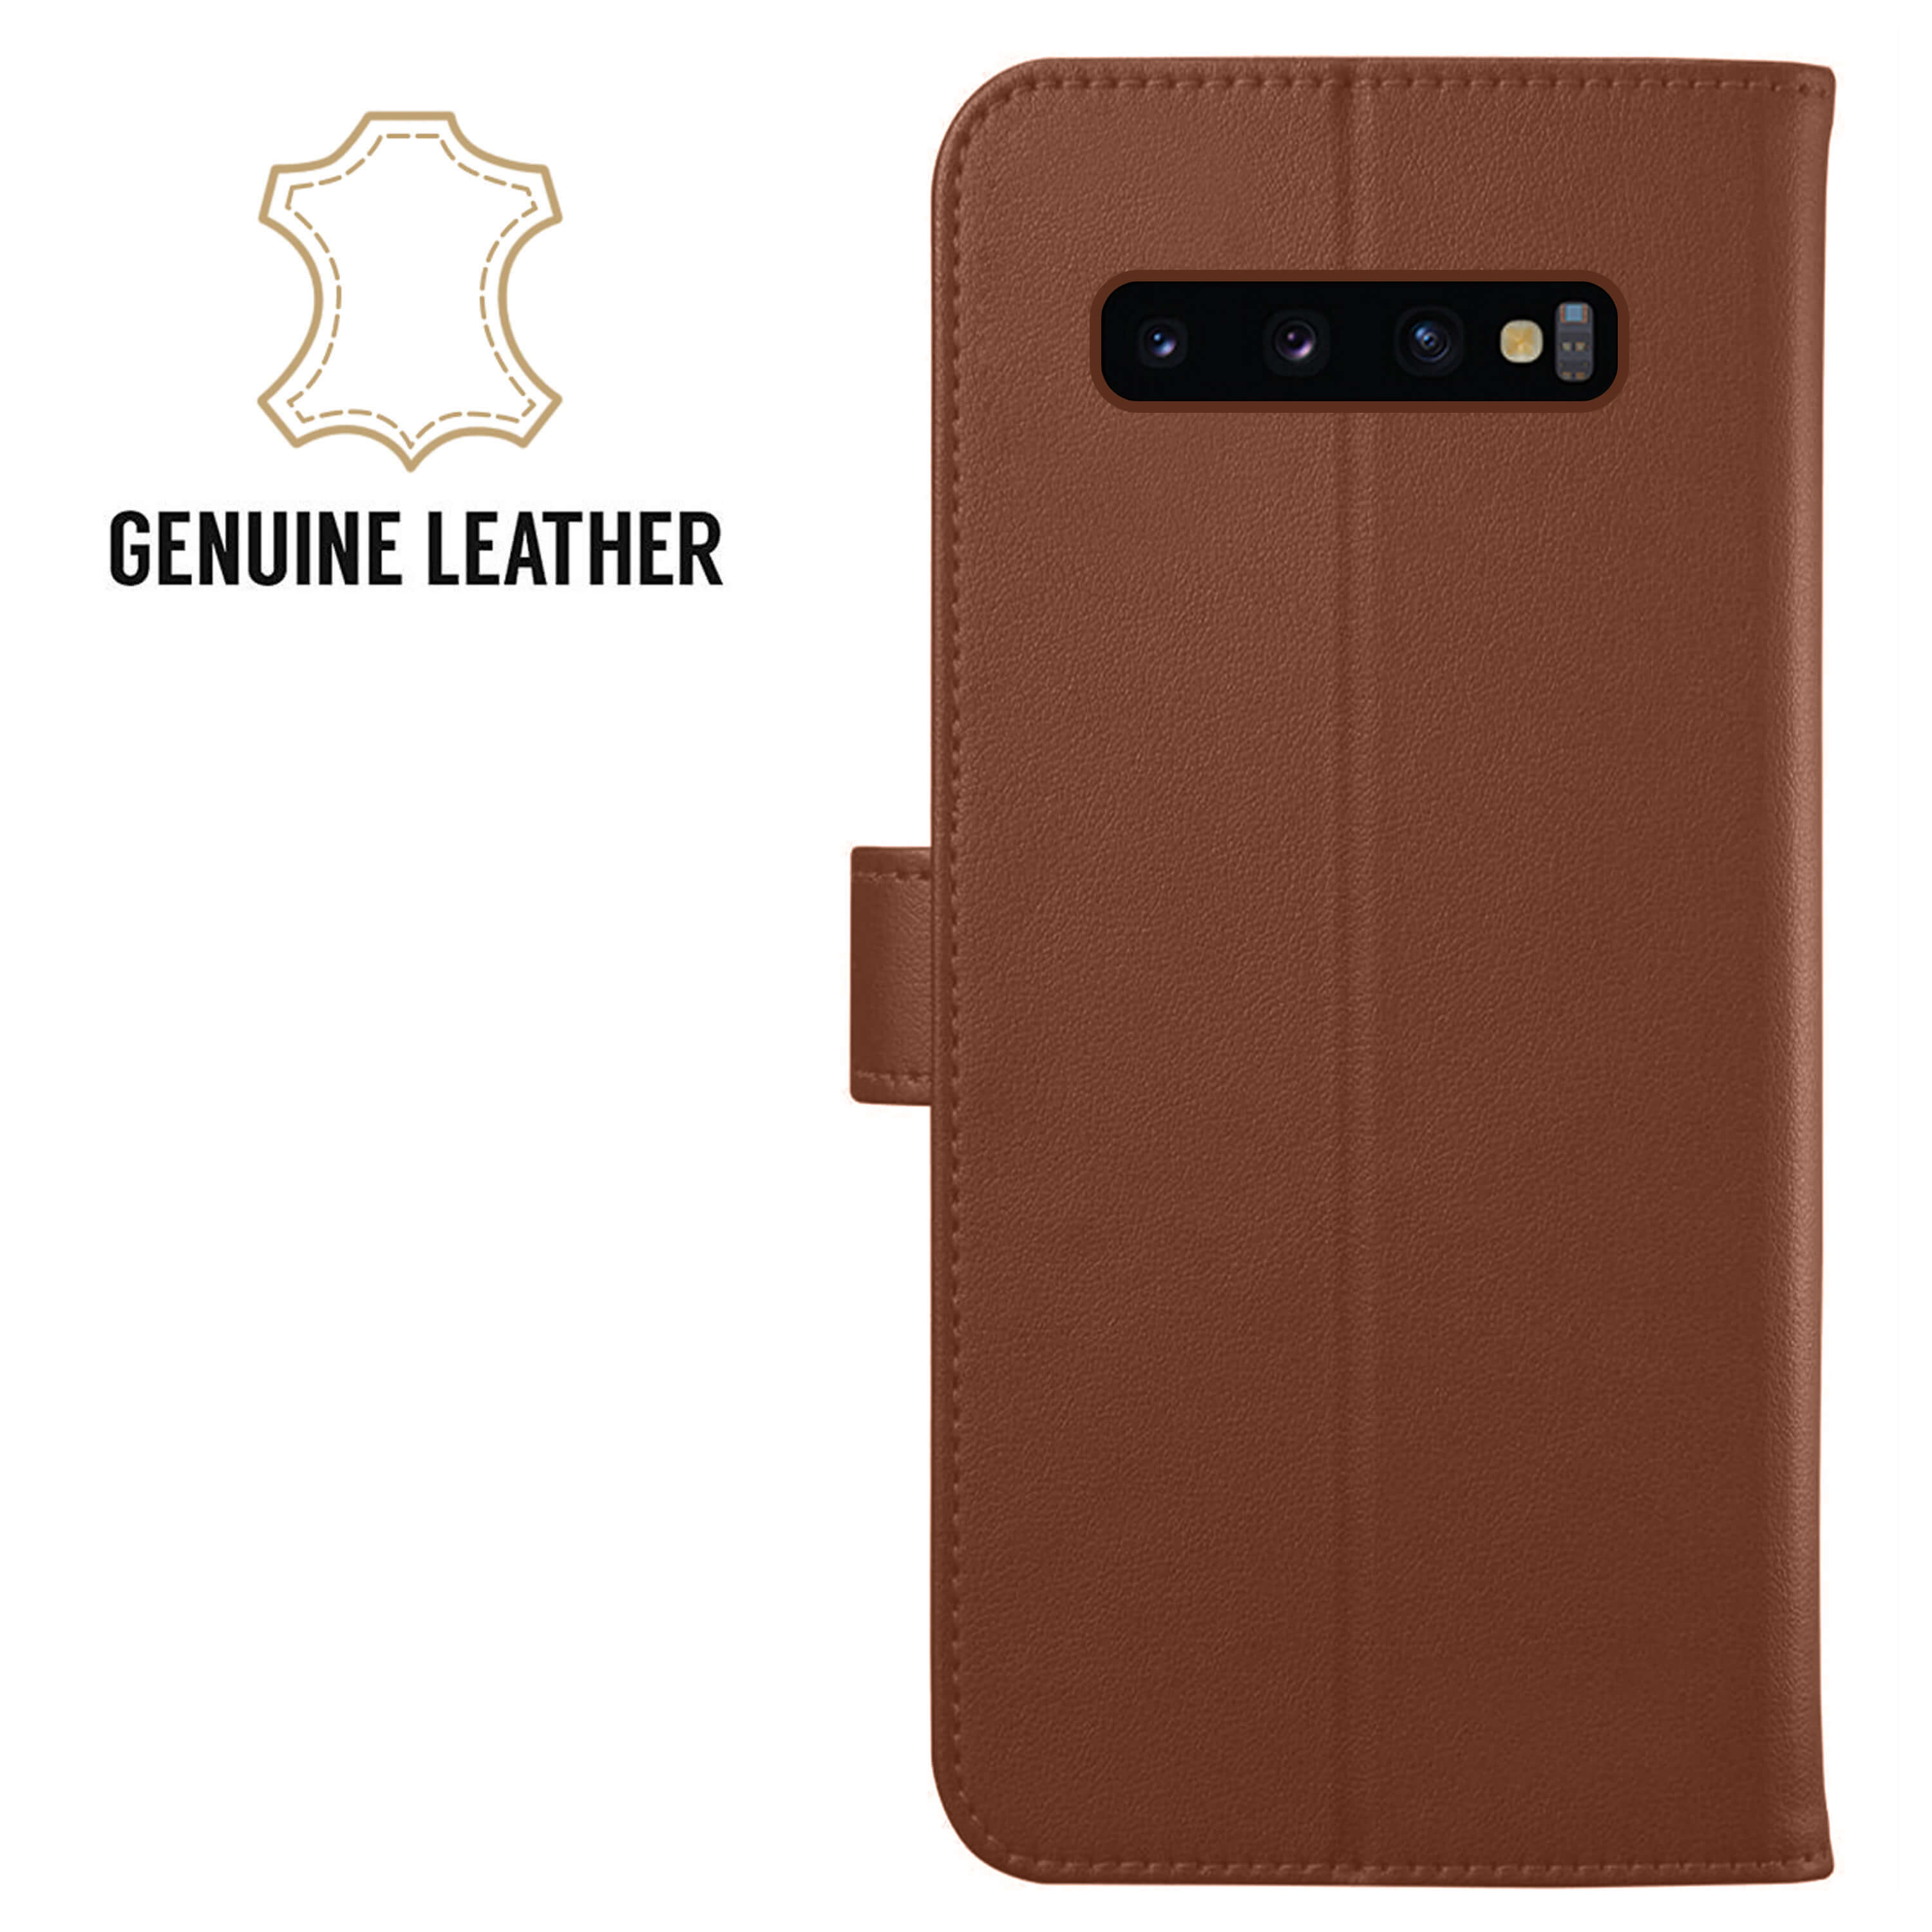 Leather-Flip-Wallet-Magnetic-Case-Cover-For-Samsung-Galaxy-S10-Plus-S9-S8-A50 thumbnail 25